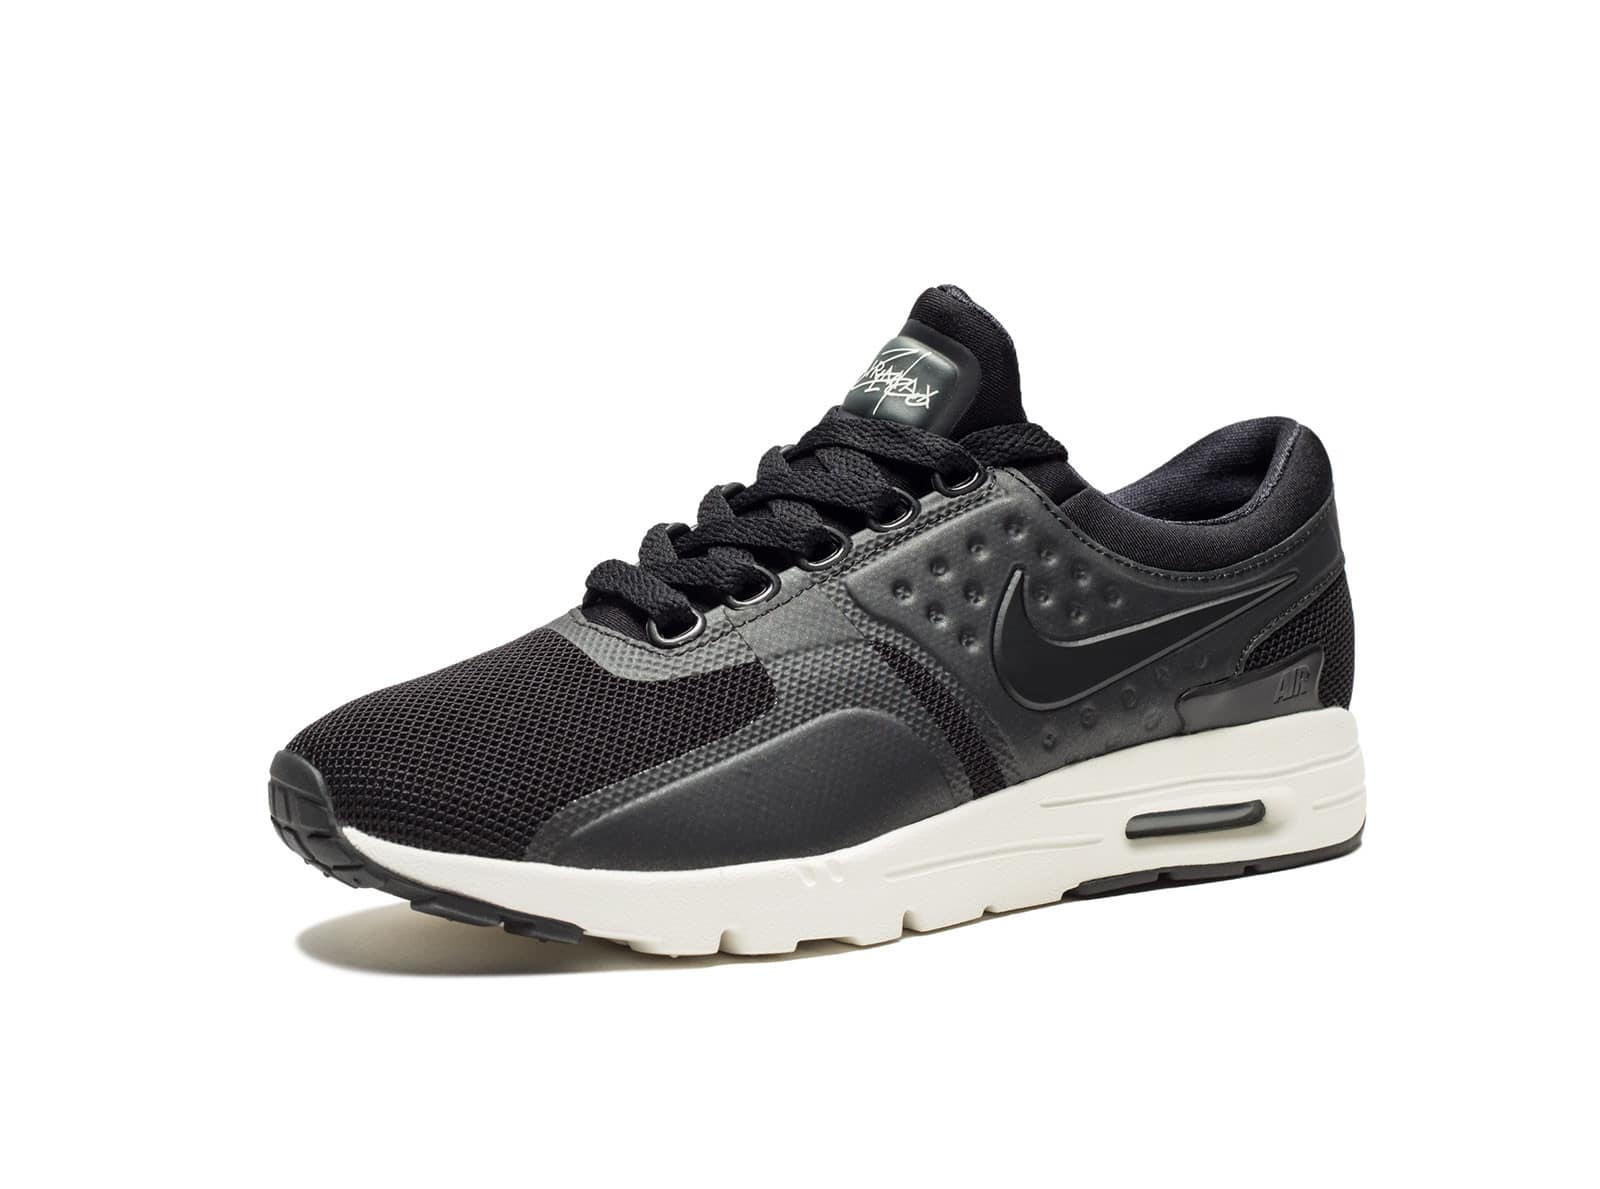 WOMEN'S AIR MAX ZERO - BLACK/SAIL